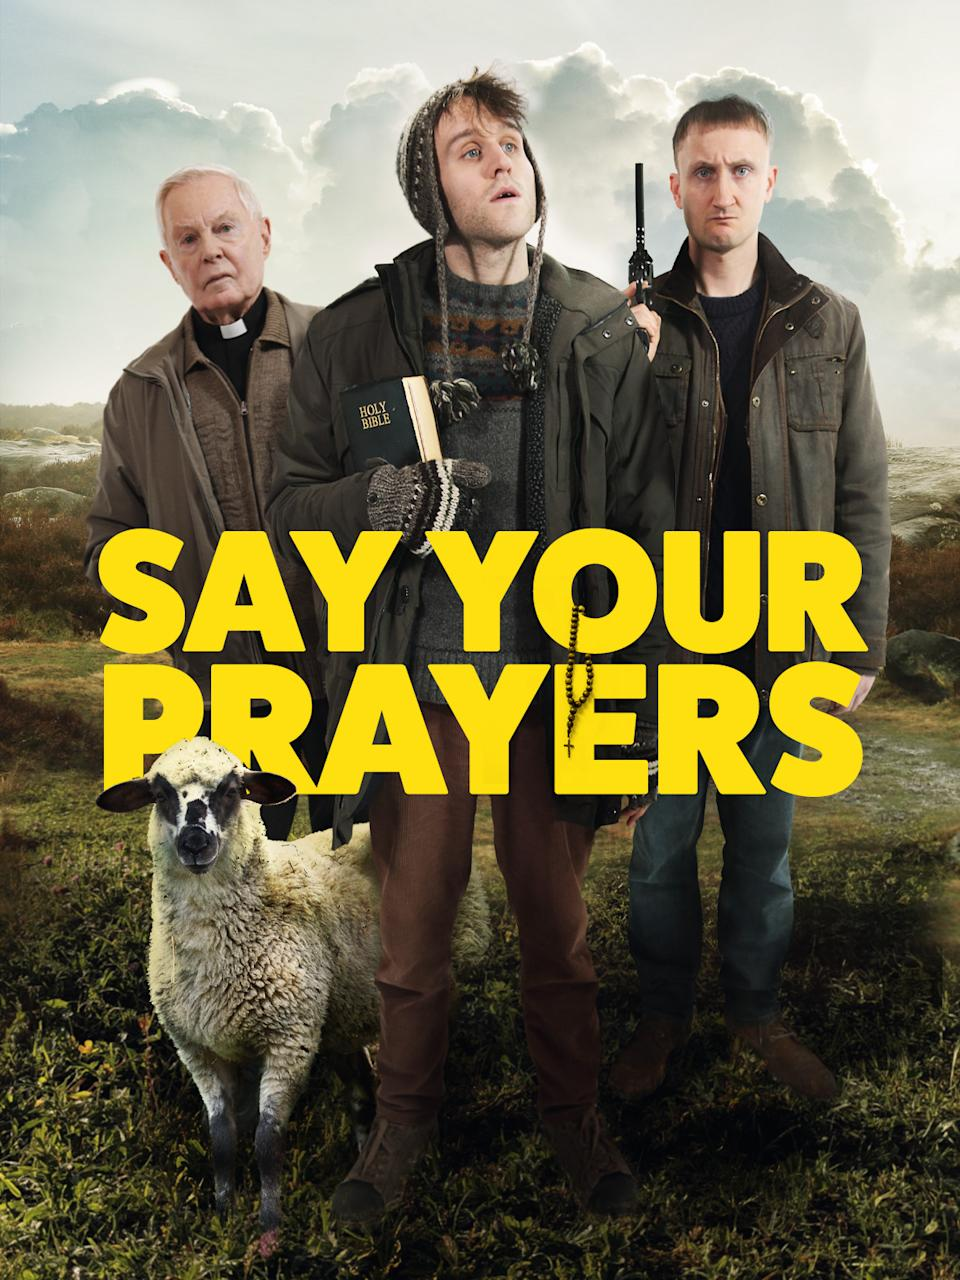 Derek Jacobi, Harry Melling and Tom Brooke in the <i>Say Your Prayers</i> poster (Central City Media)